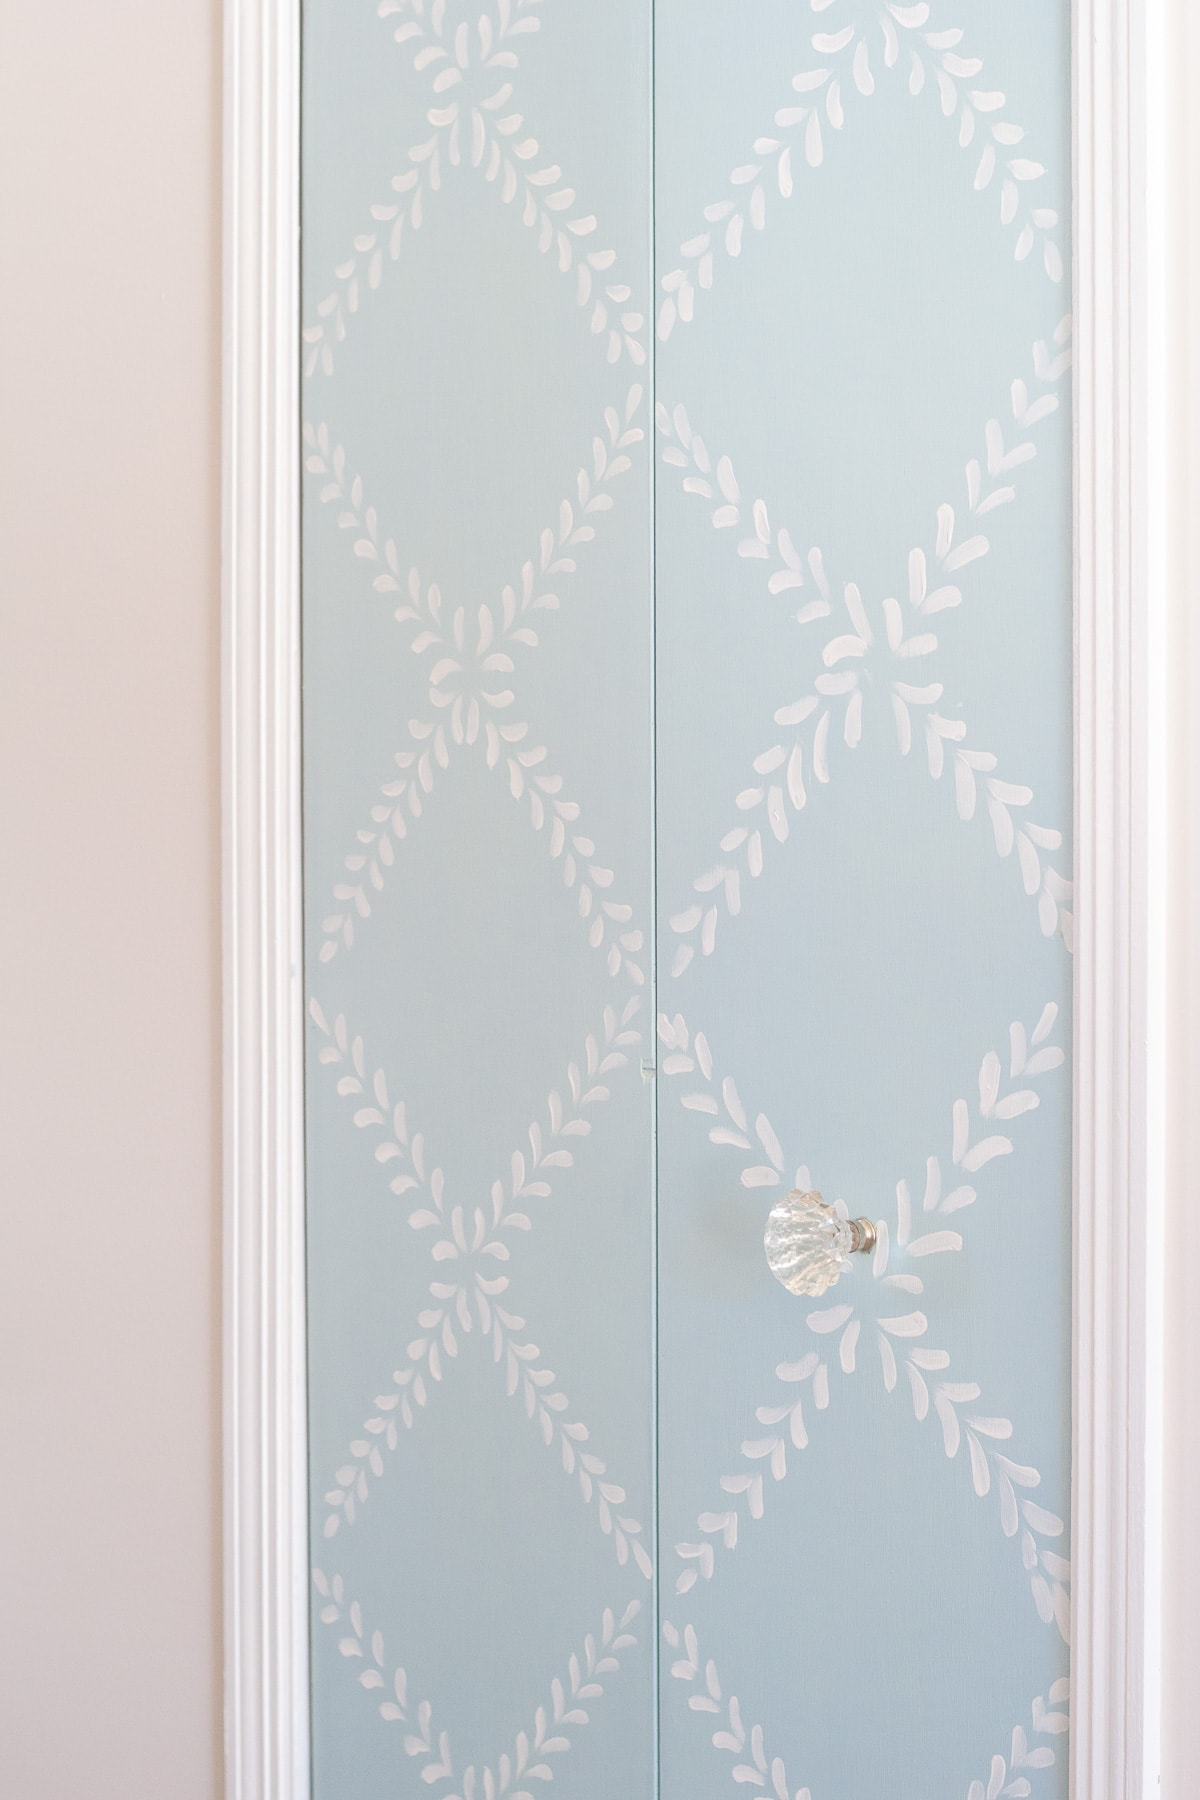 An old bi-fold pantry door updated with chalk paint in a floral design.